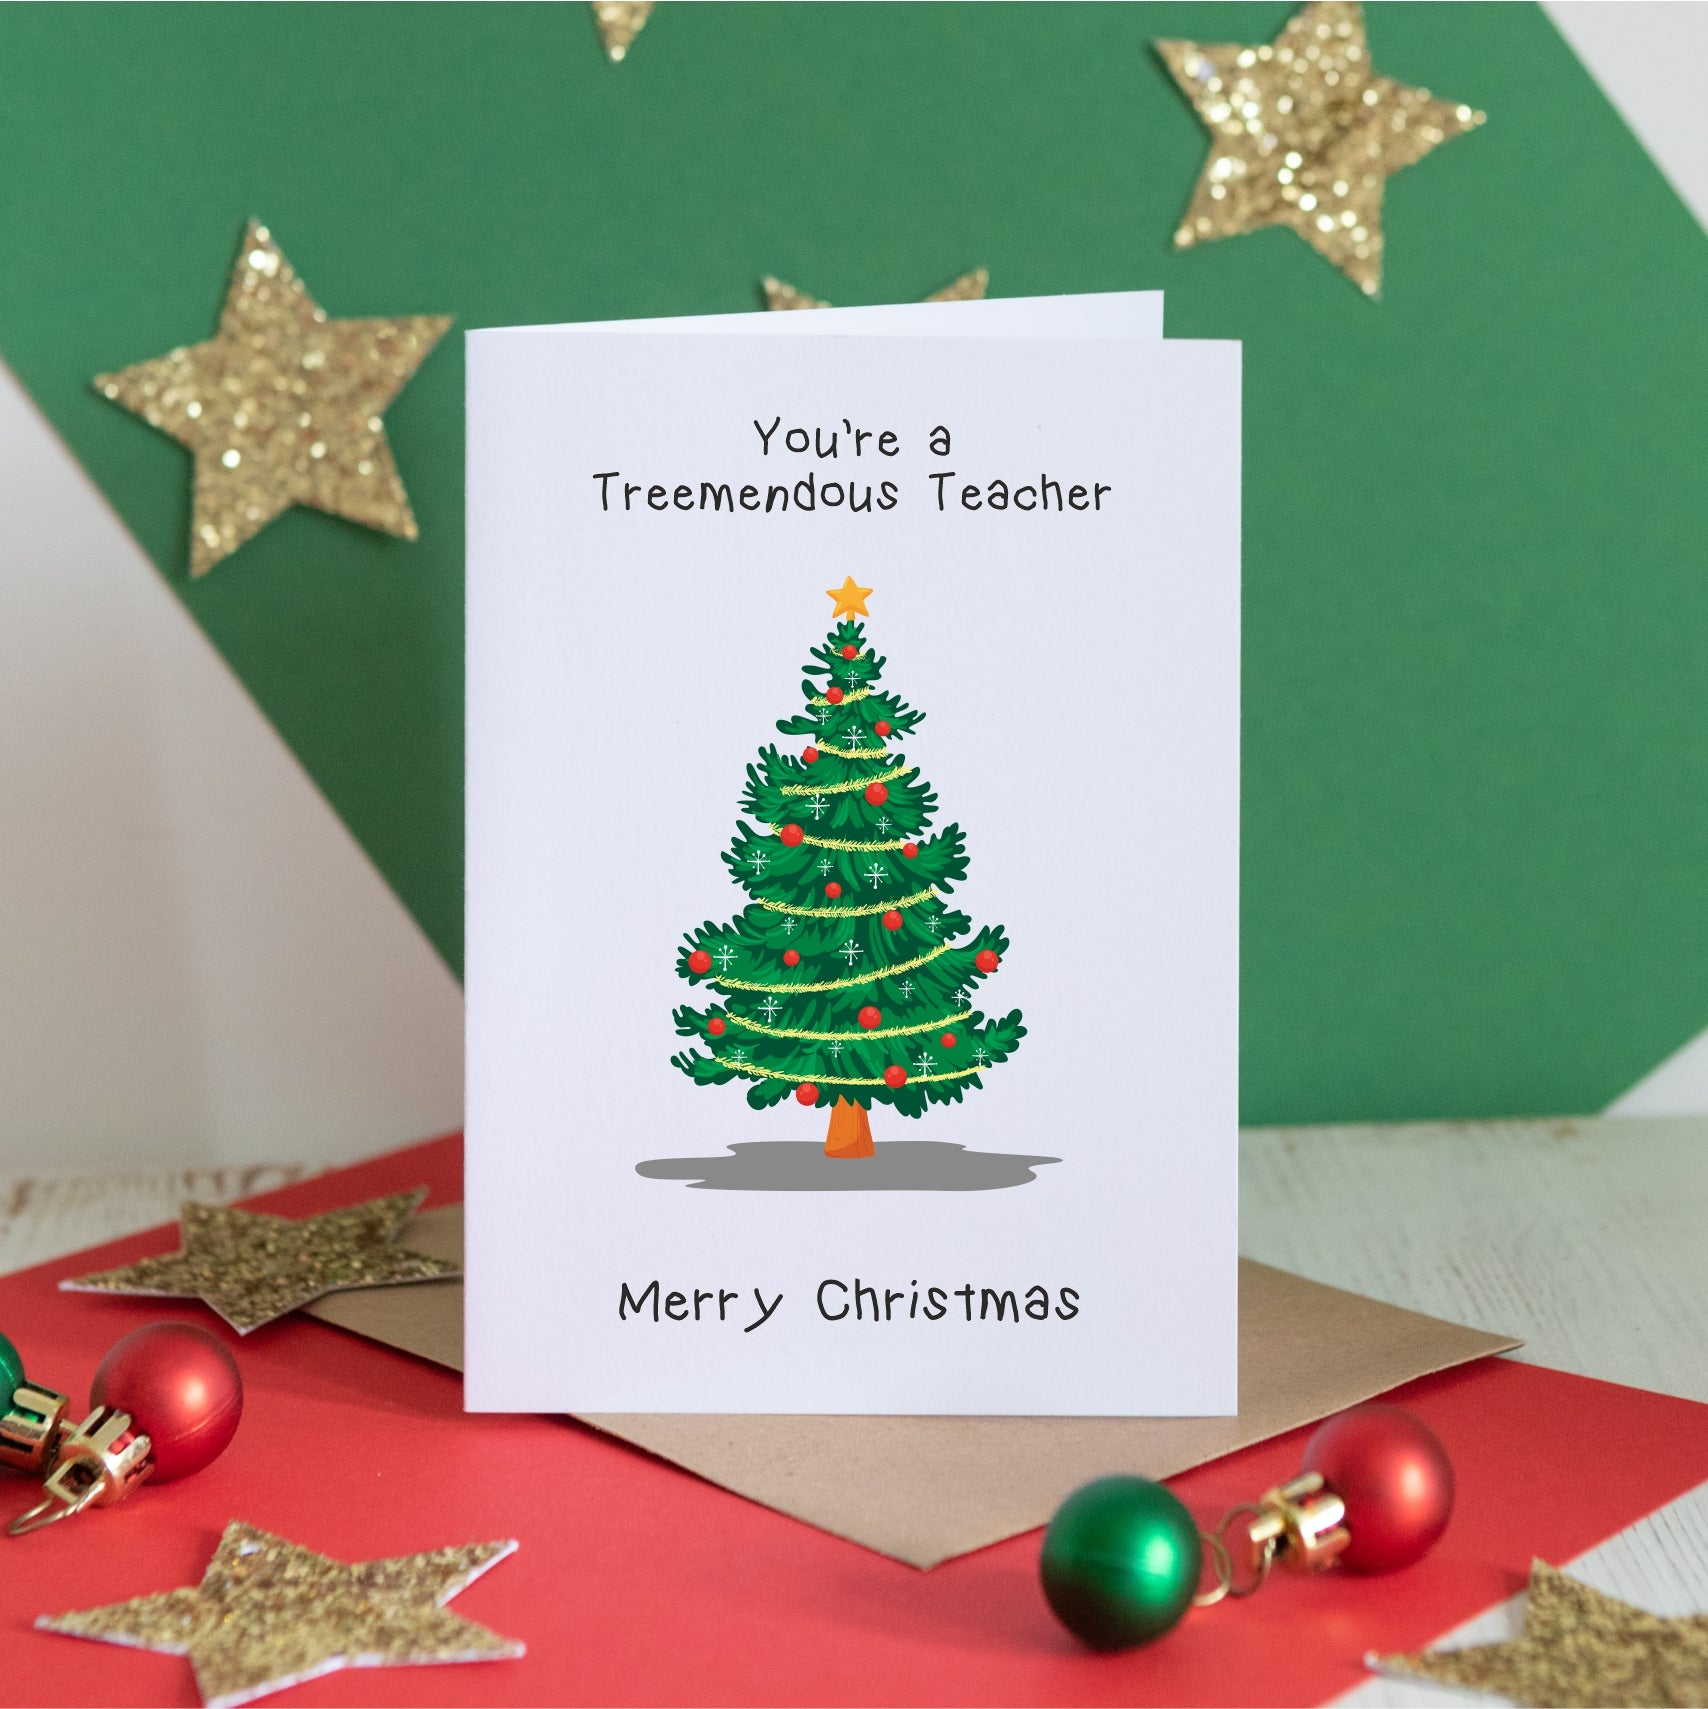 Treemendous Teacher Card